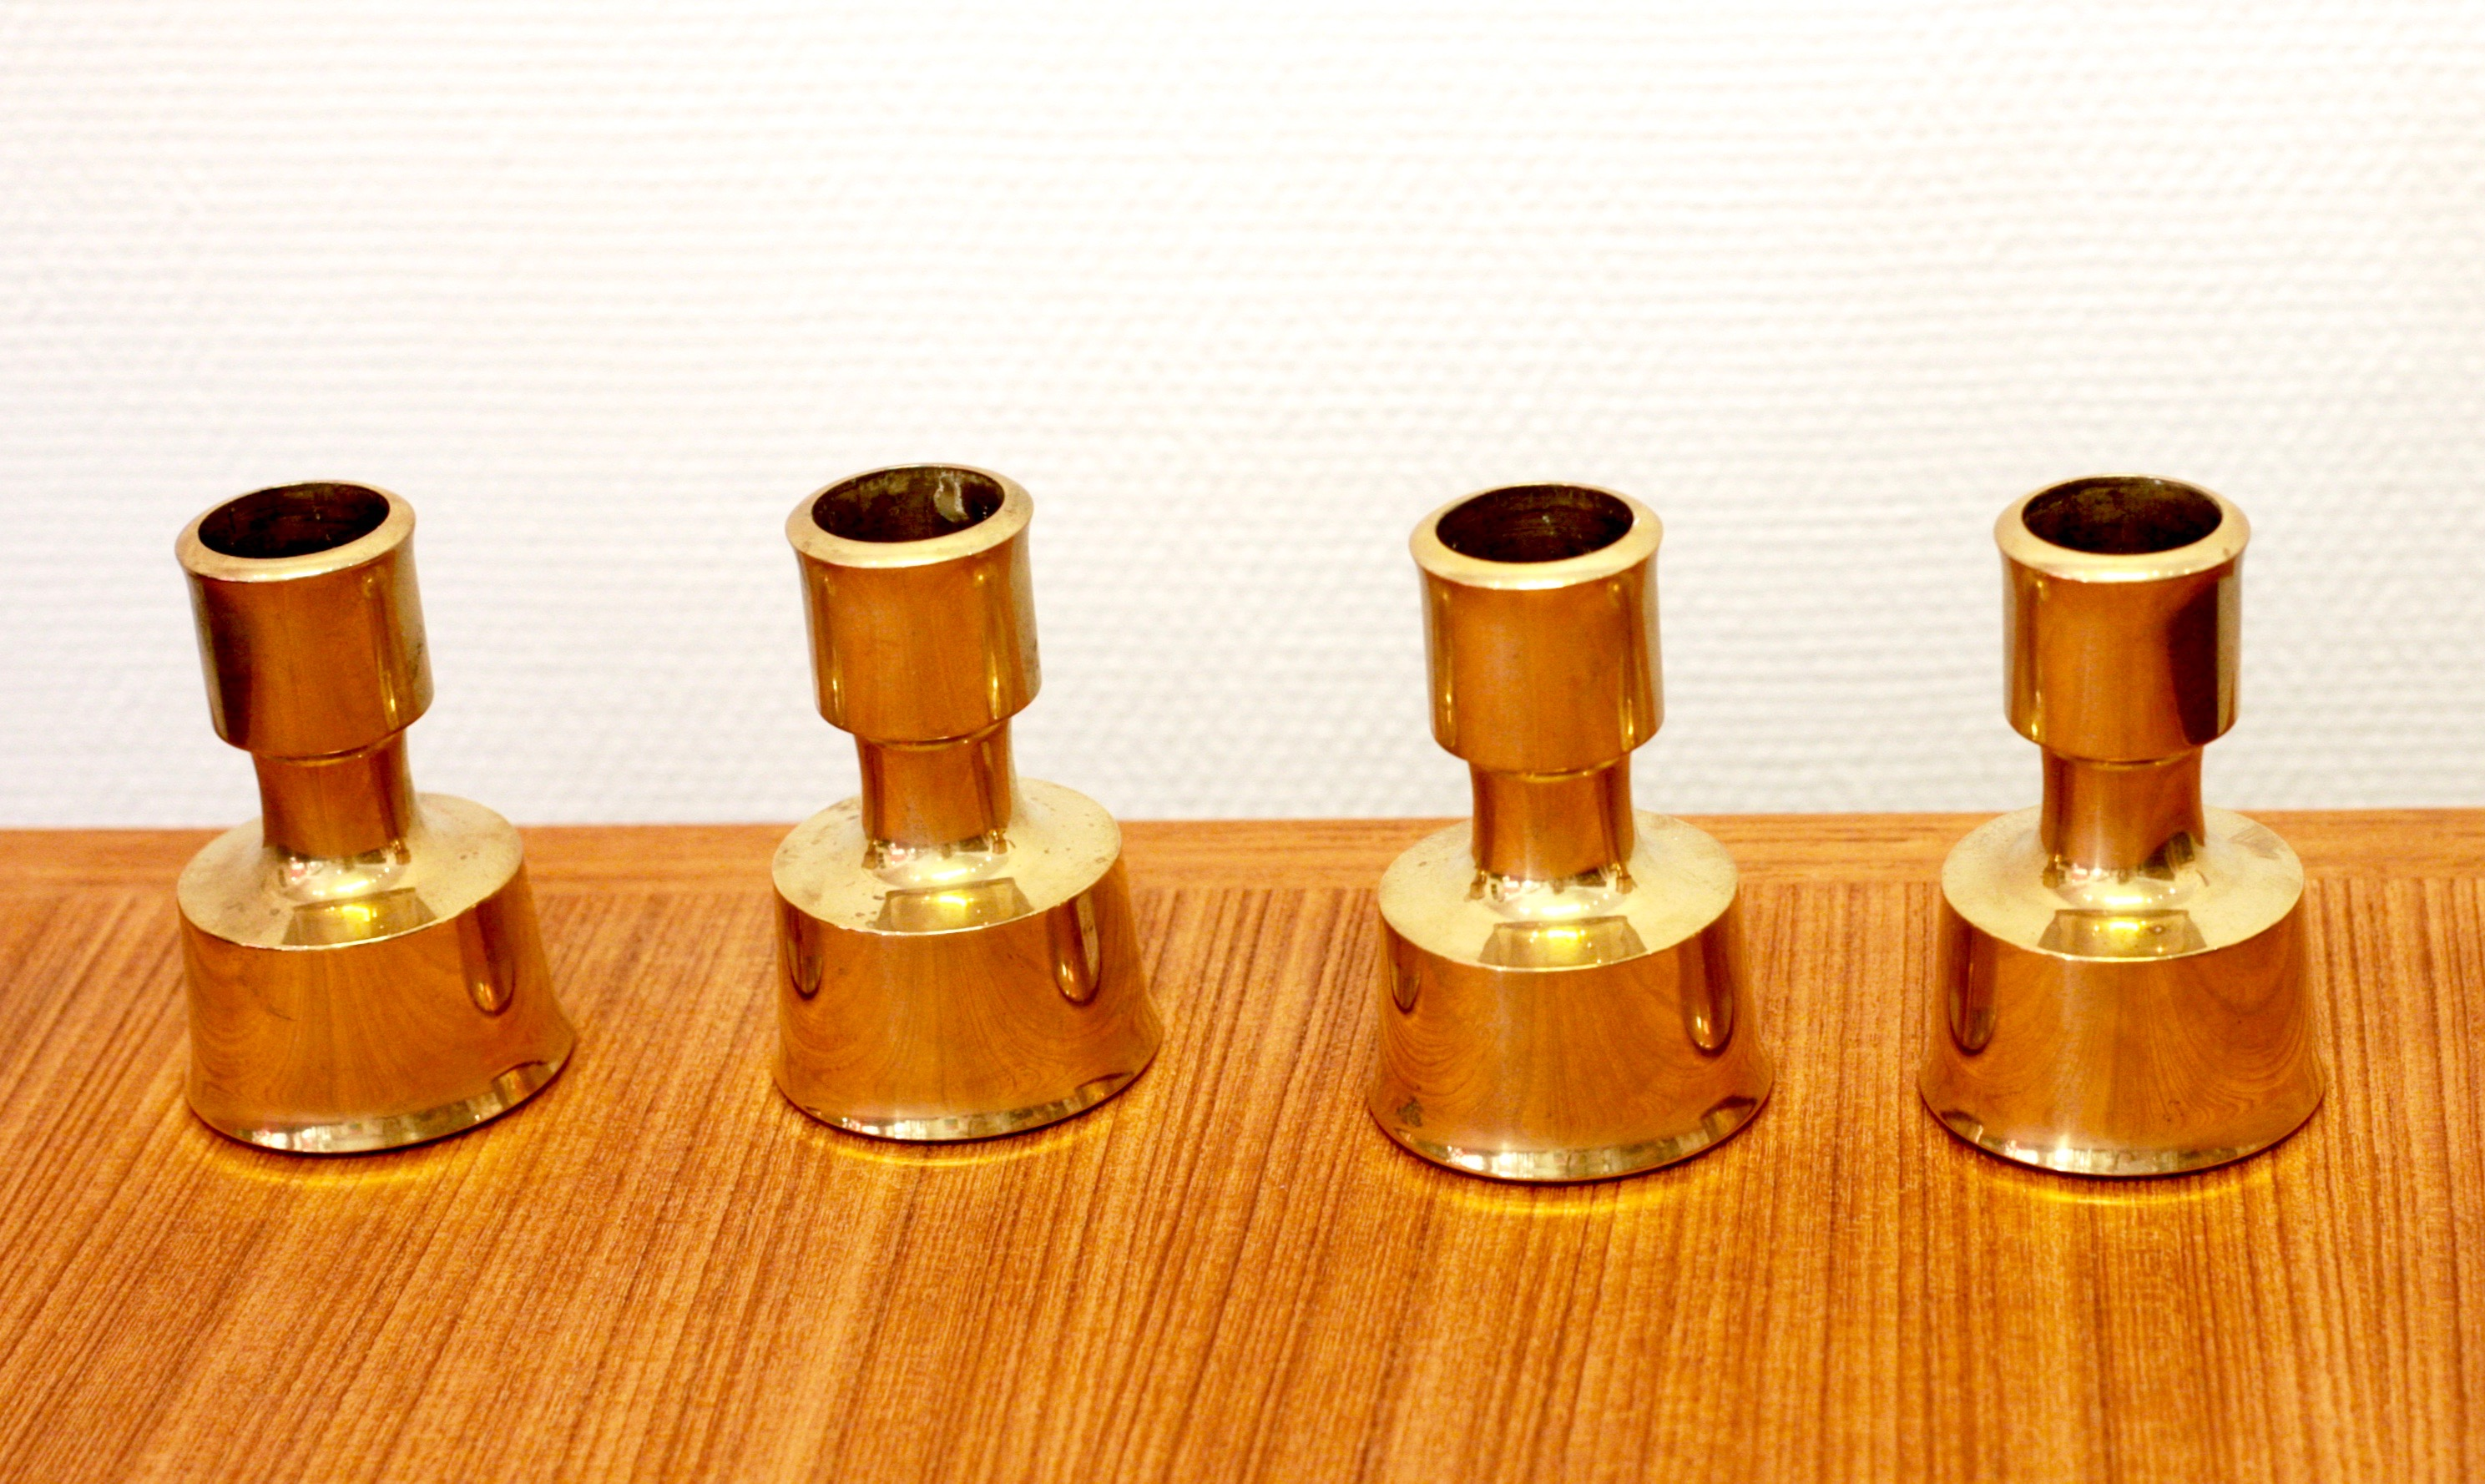 Jens H Quistgaard - Set of 4 candle holders